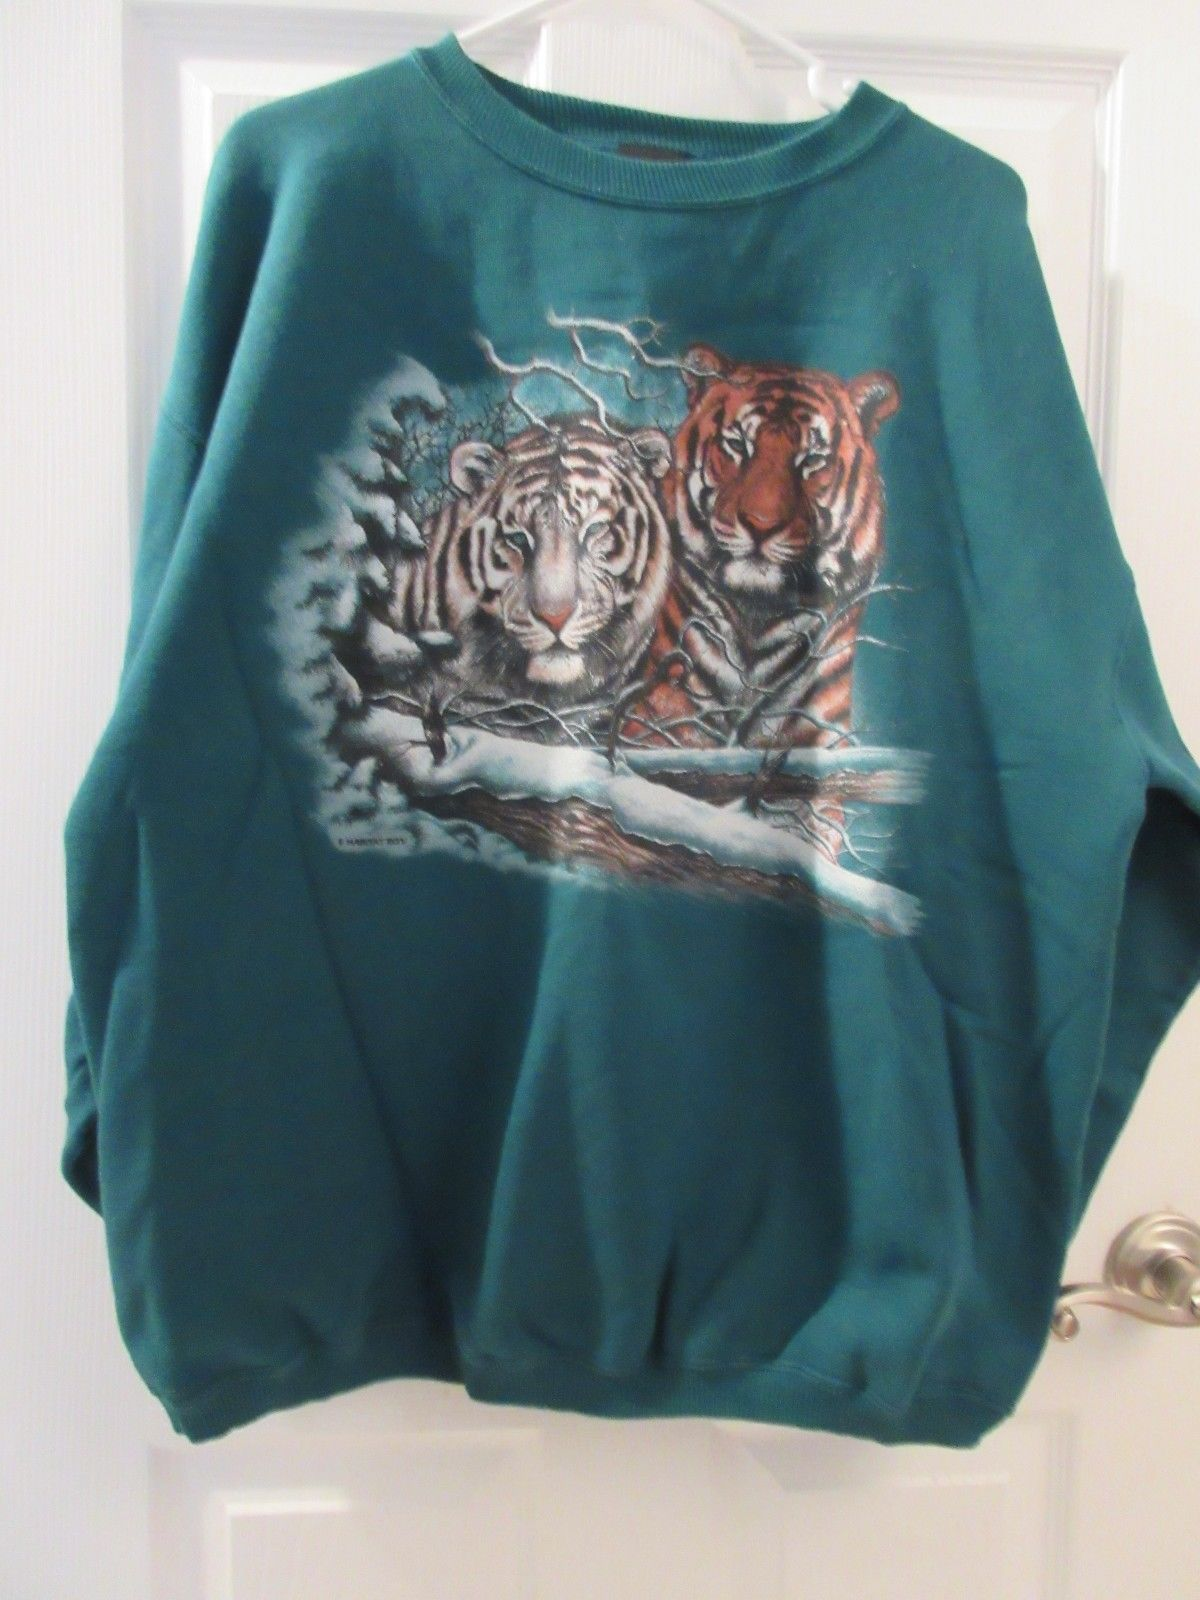 UNISEX ADULT SWEATSHIRT - GREEN WITH BROWN  TIGERS - SIZE XL - EUC